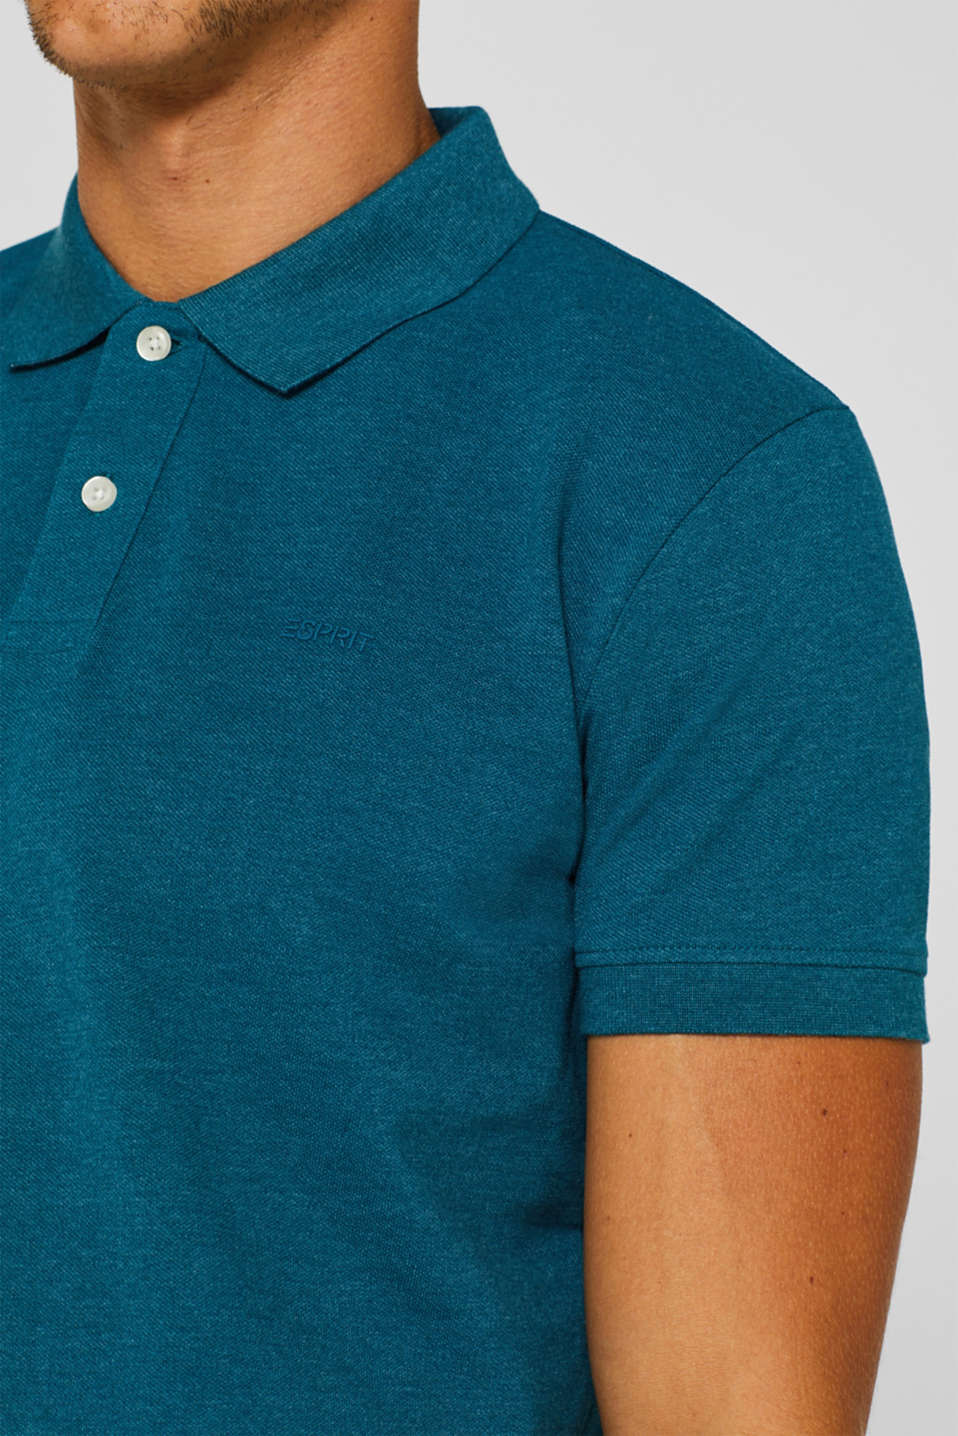 Piqué polo shirt in blended cotton, TEAL BLUE, detail image number 1